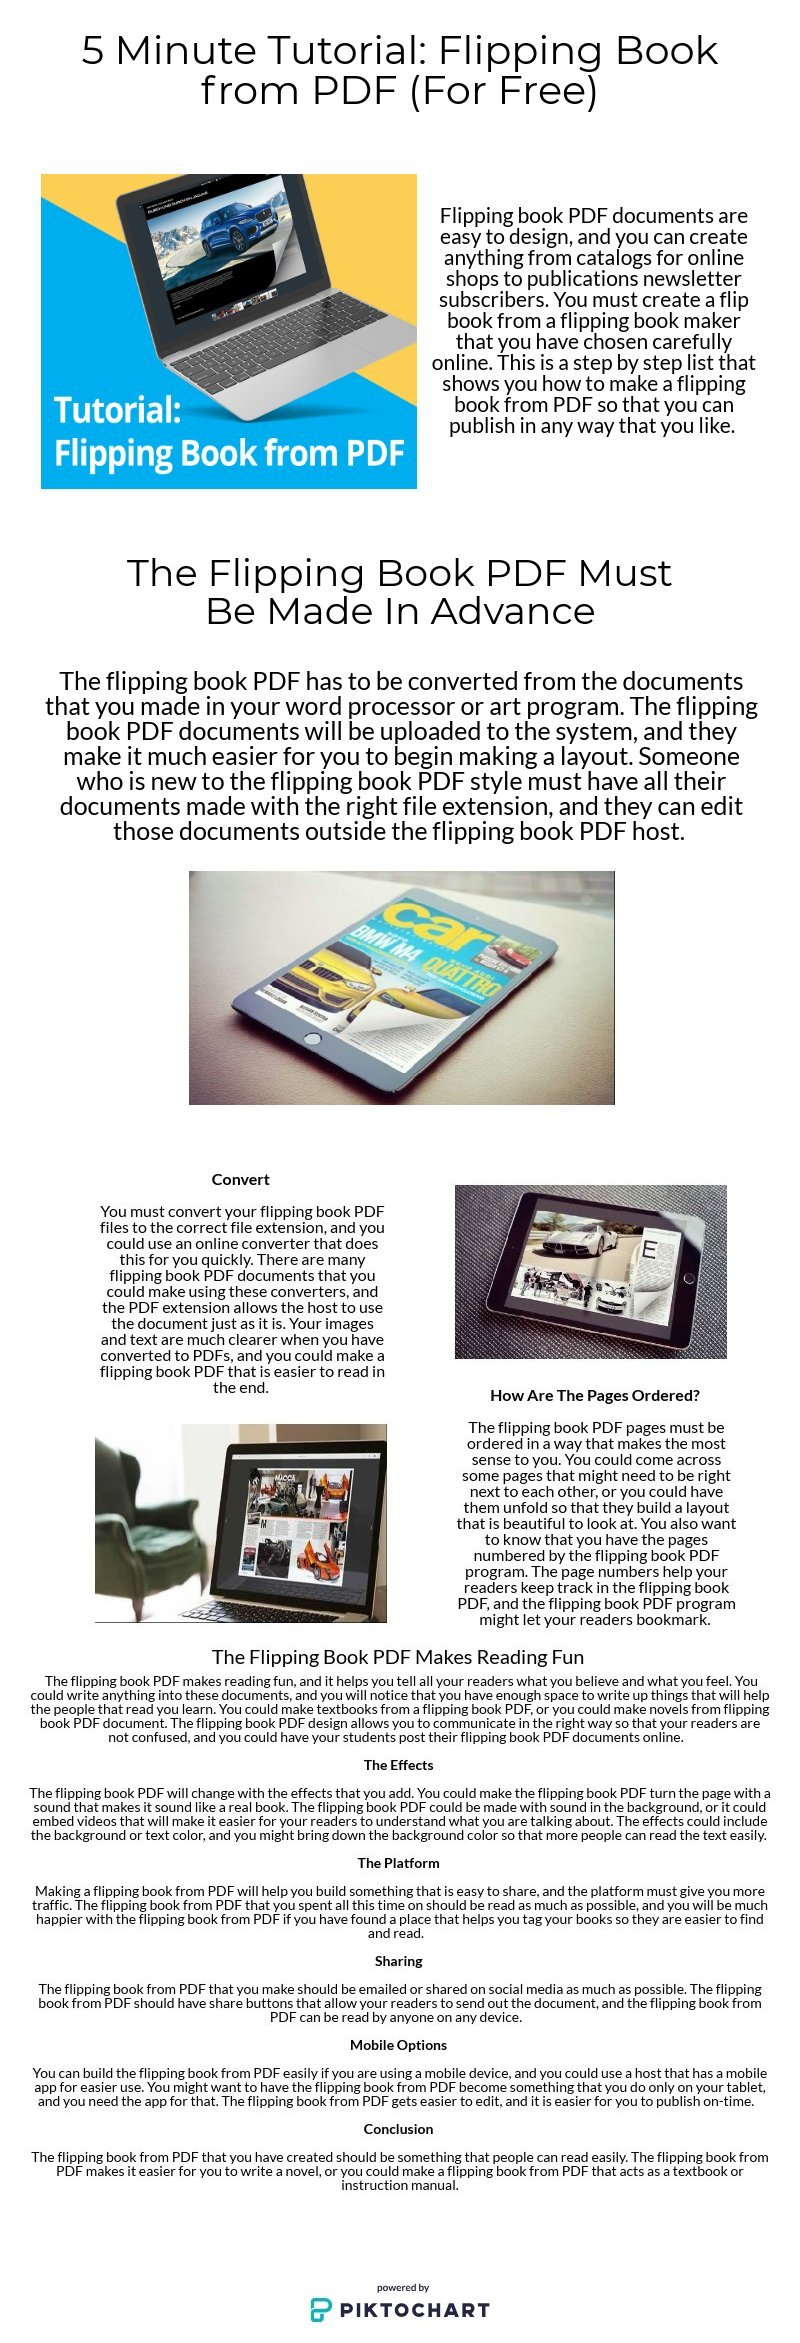 5 minute tutorial flipping book from pdf for free piktochart